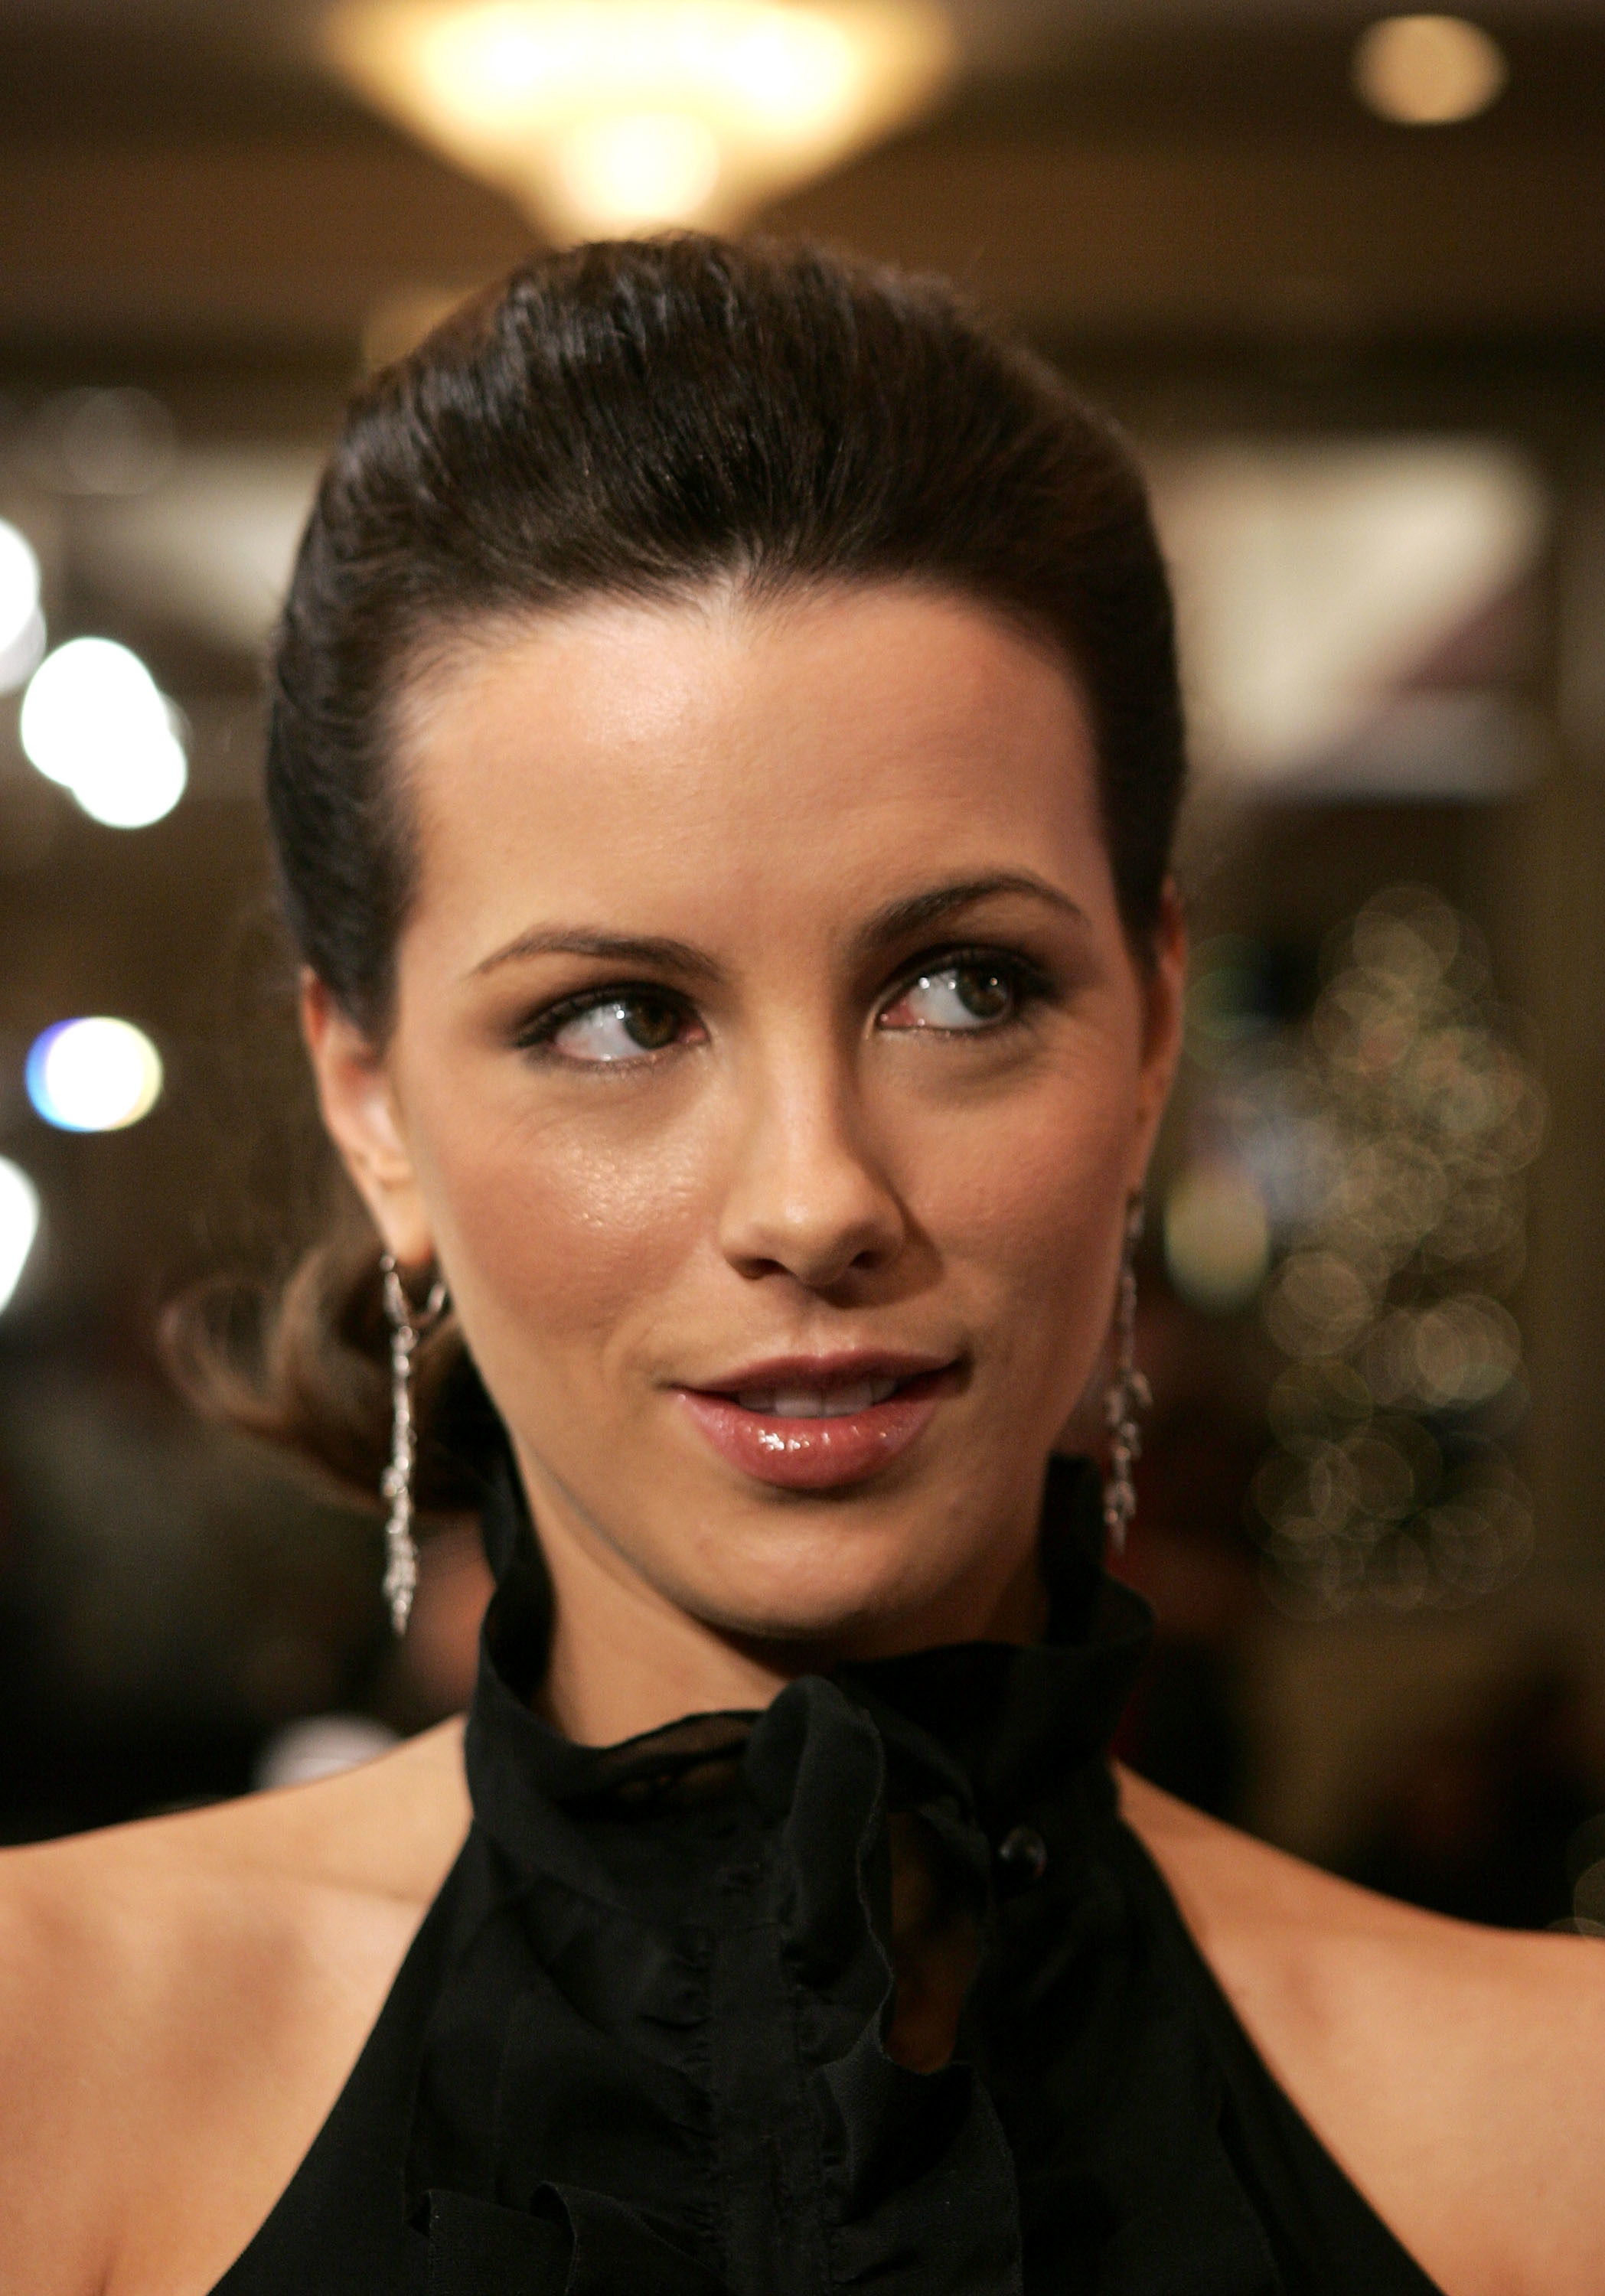 kate beckinsale earrings Celebrity HD Wallpaper